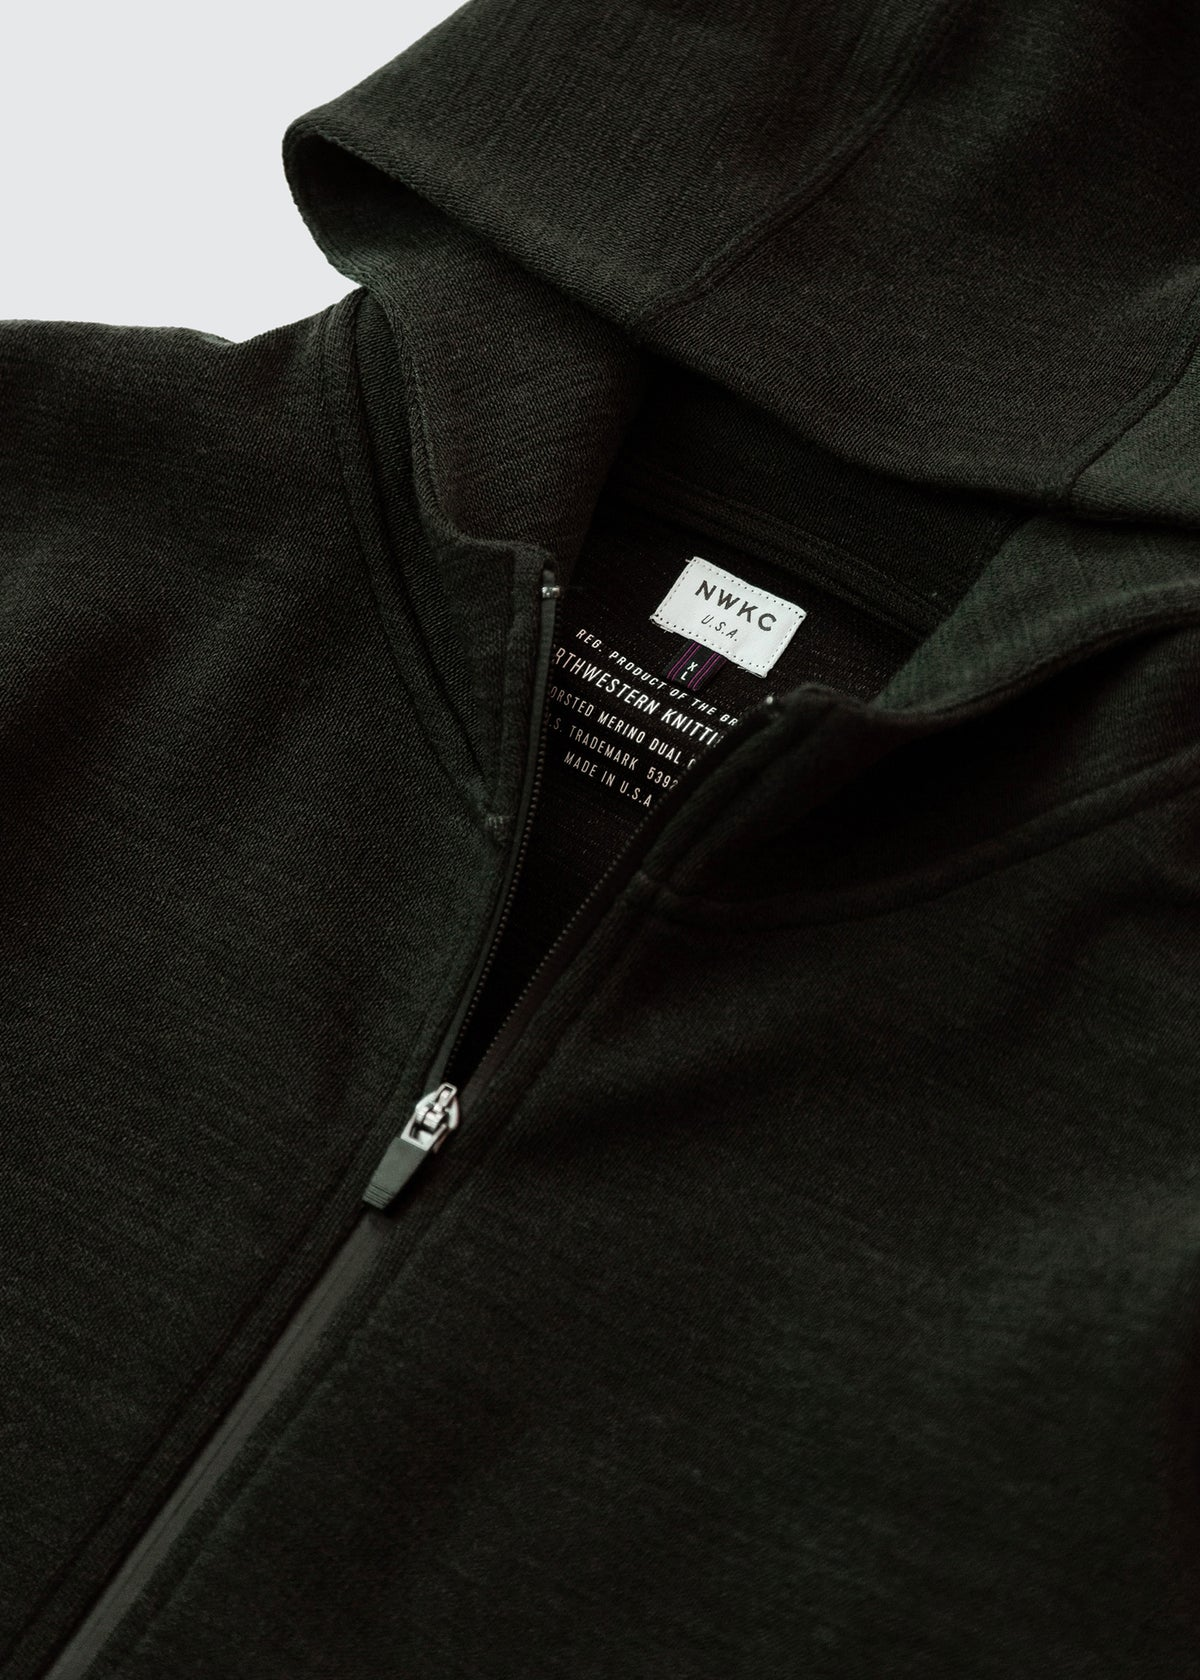 201 - NYLON HOODED ZIP - FOREST - Wilson & Willy's - MPLS Neighbor Goods